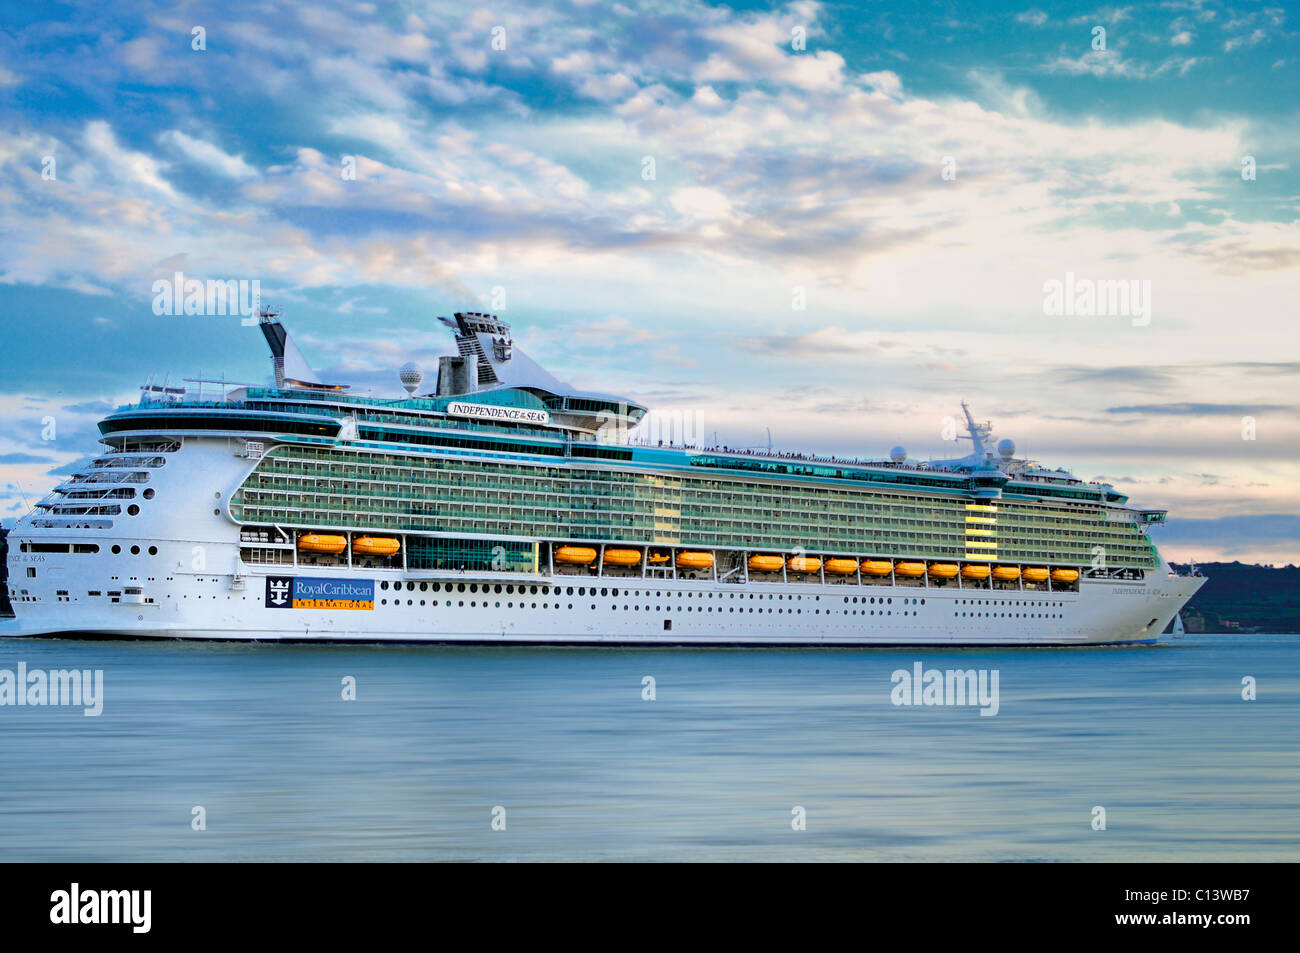 Portugal, Lisbon: Cruiser Liner 'Independence of the Seas' at river Tagus leaving the harbor of Lisbon - Stock Image